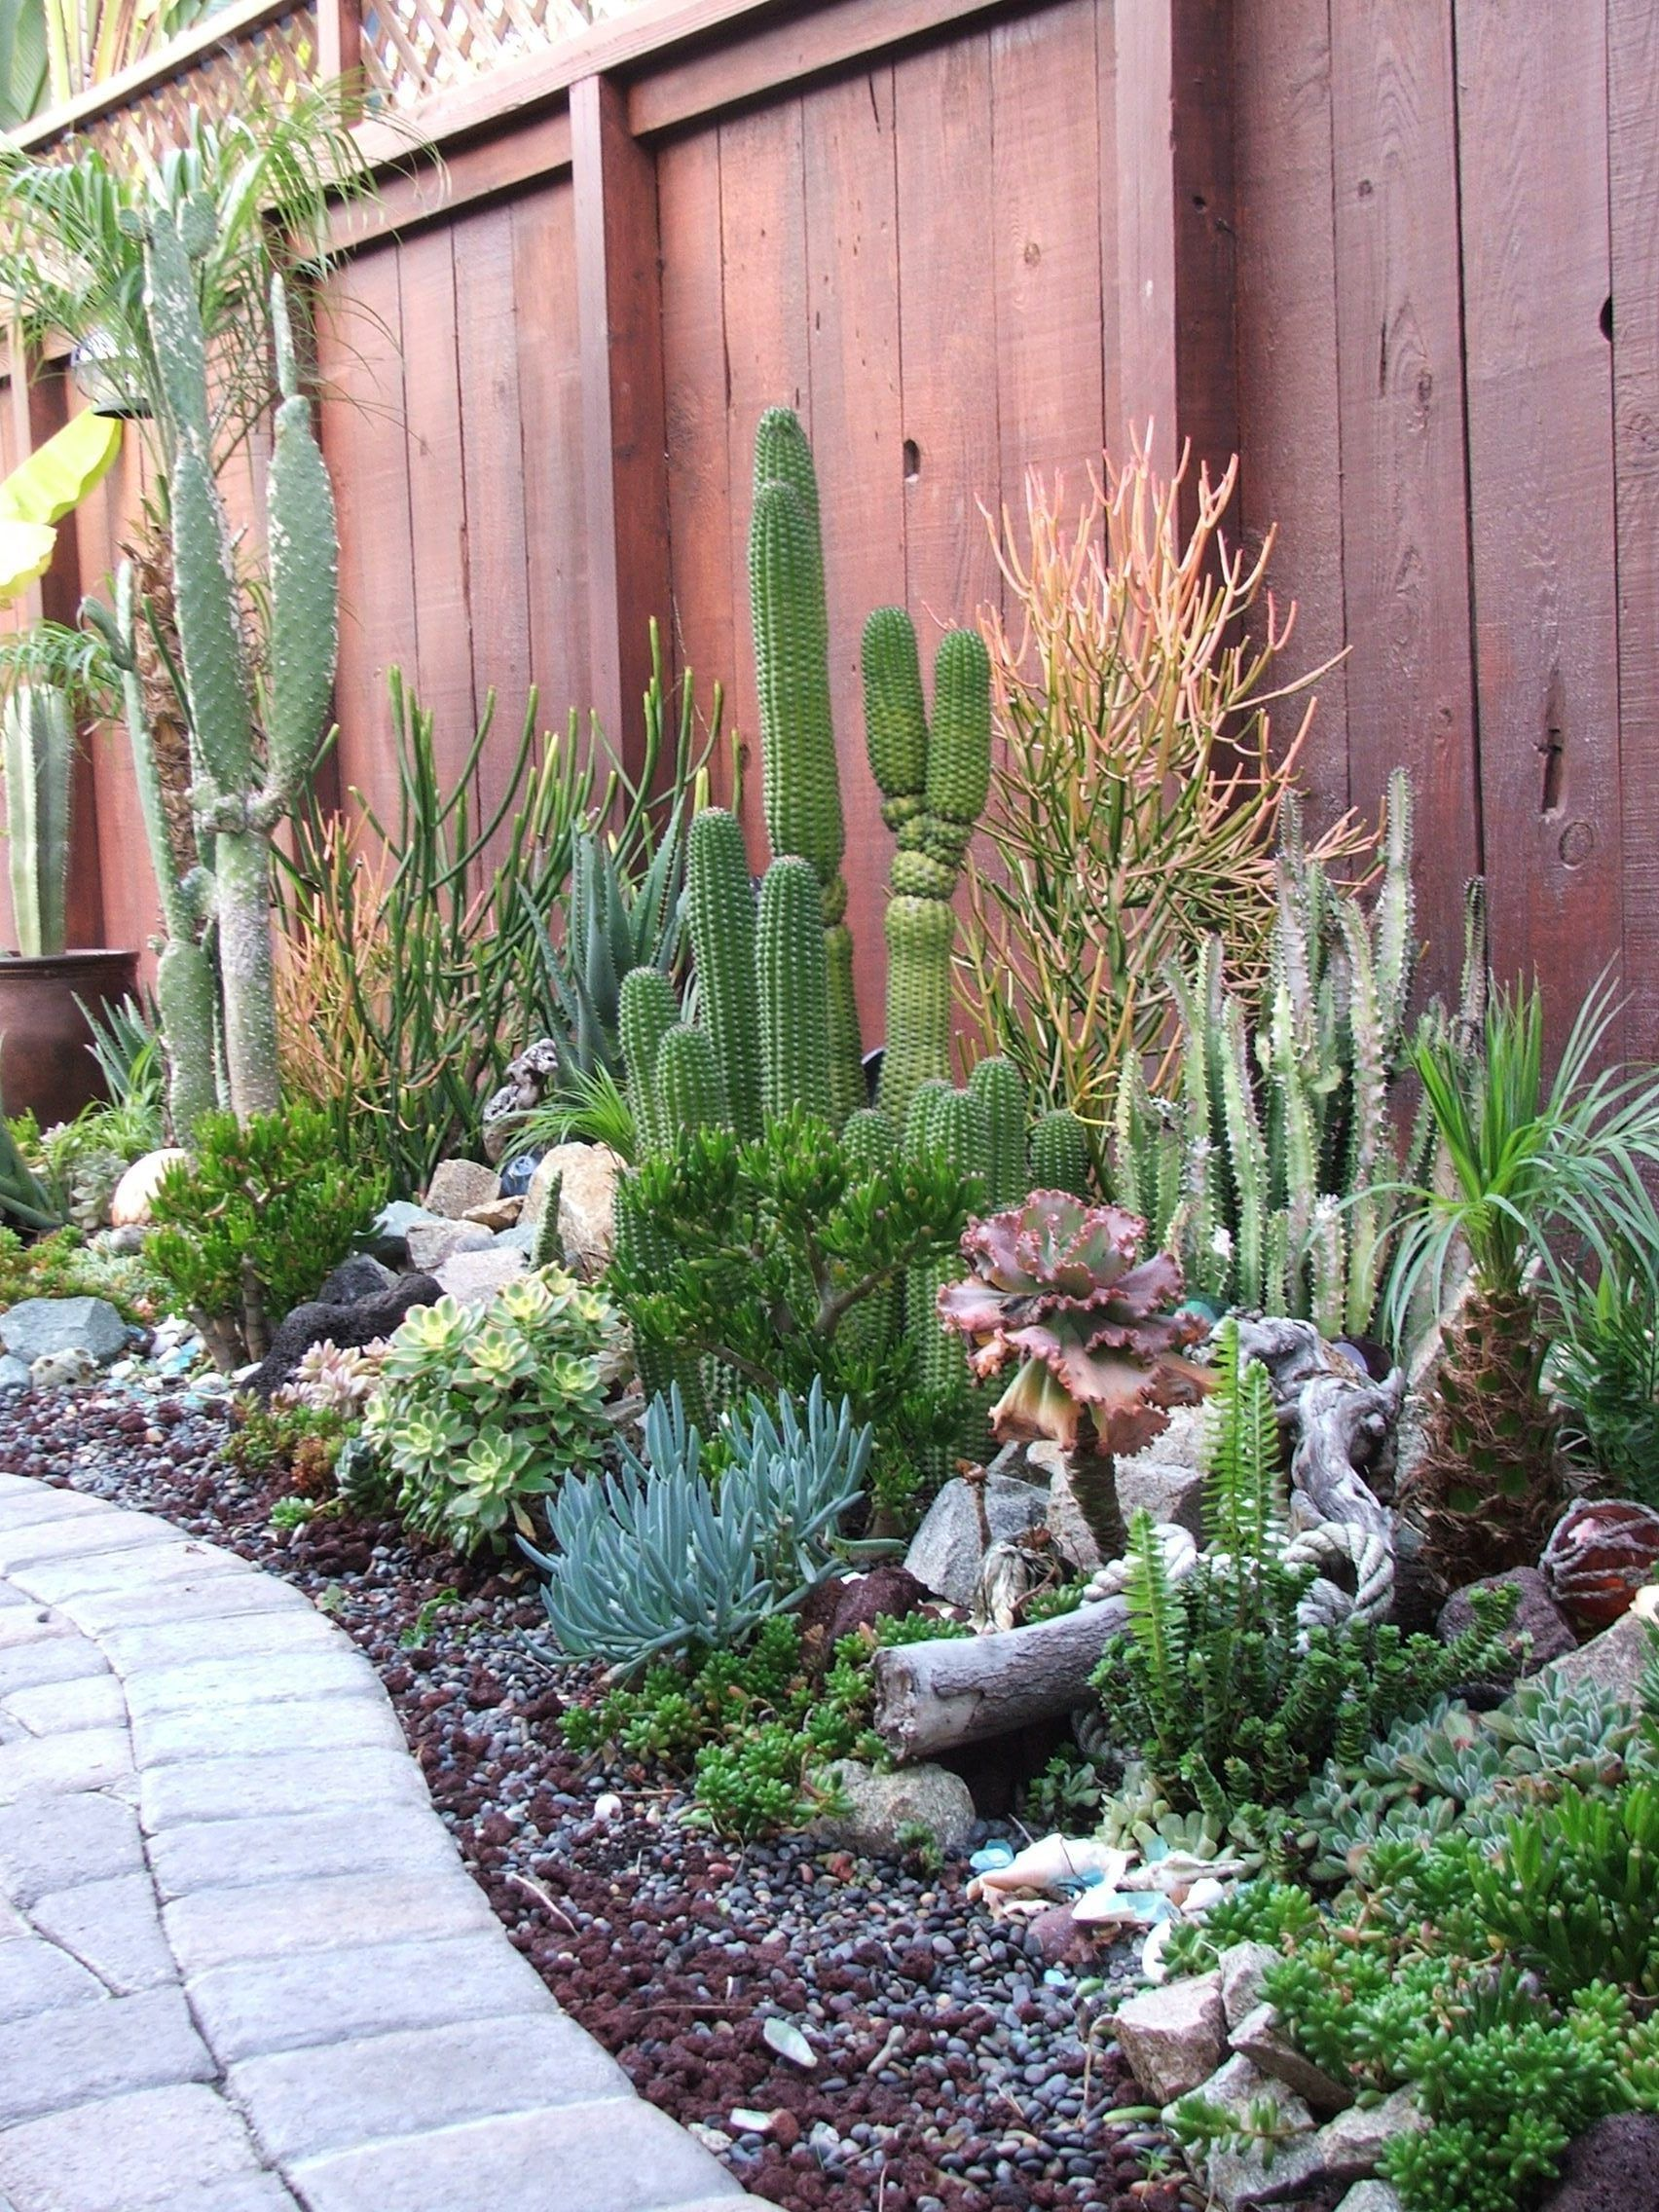 Under The Sea Garden In My Backyard Has Succulents, Cactus, Aloe, Seashells,